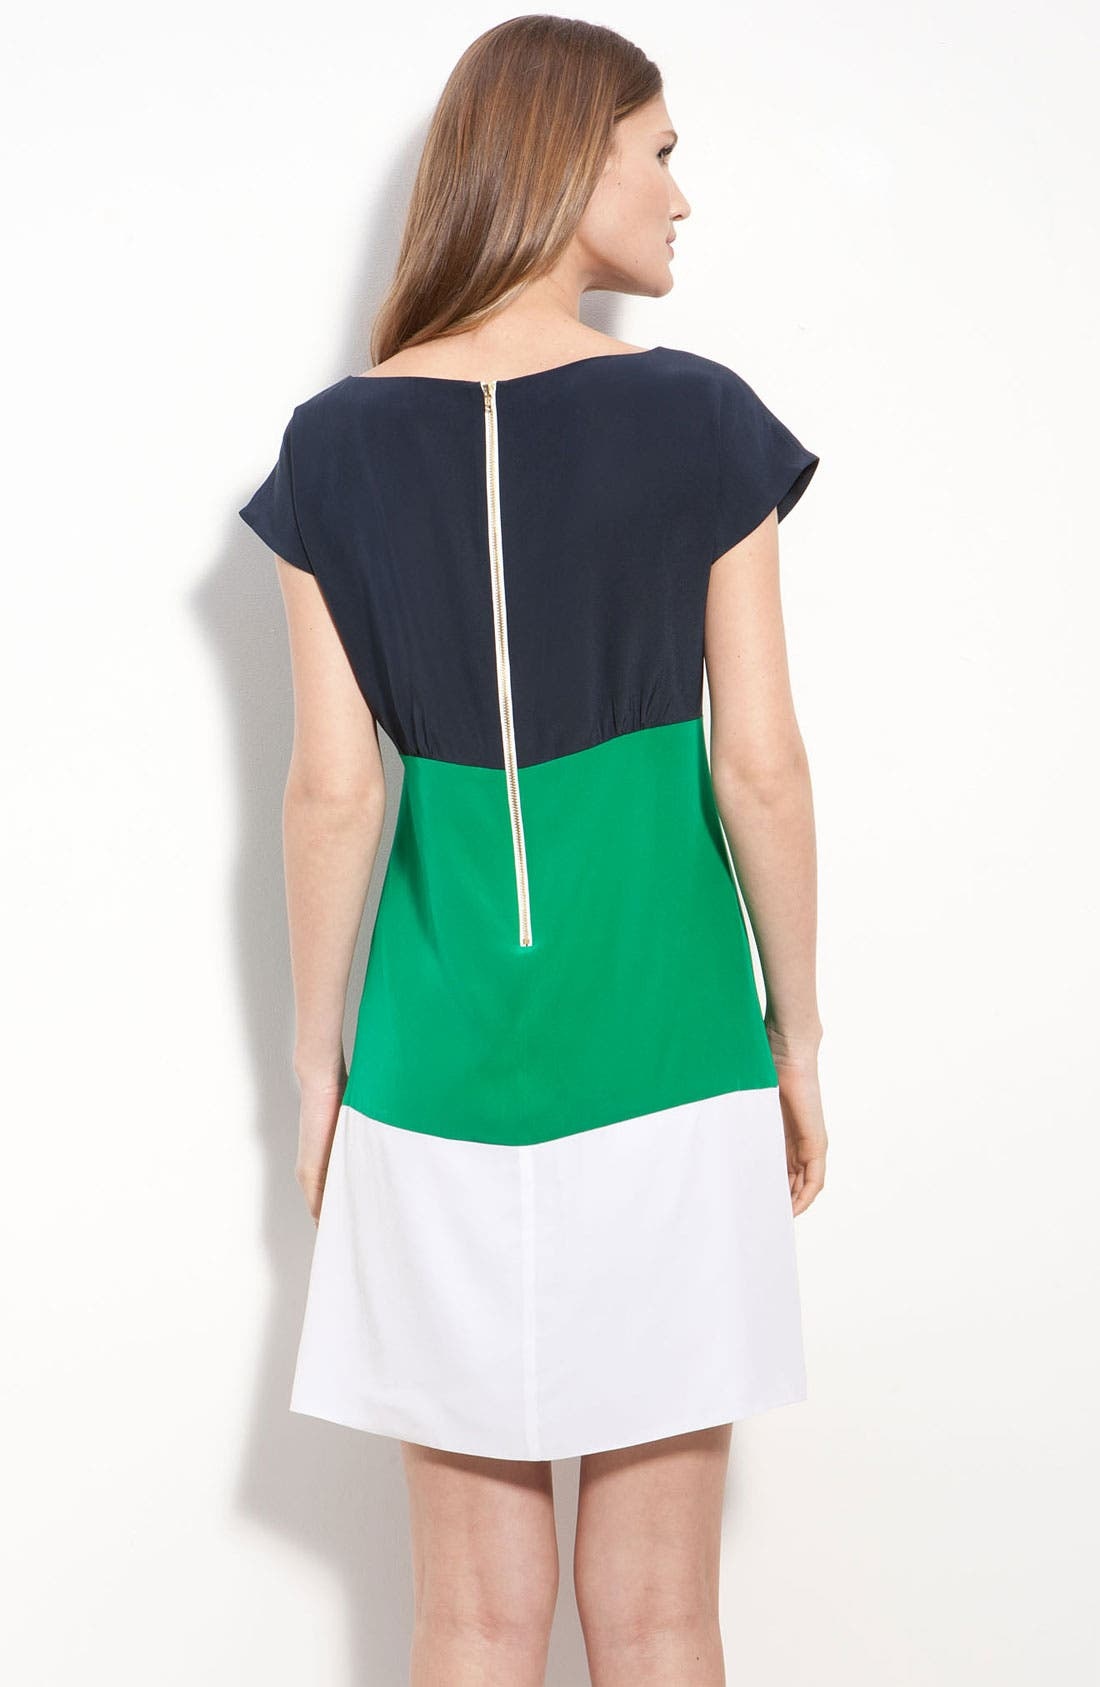 ELIZA J, Colorblock Silk Crêpe de Chine Dress, Alternate thumbnail 2, color, 400